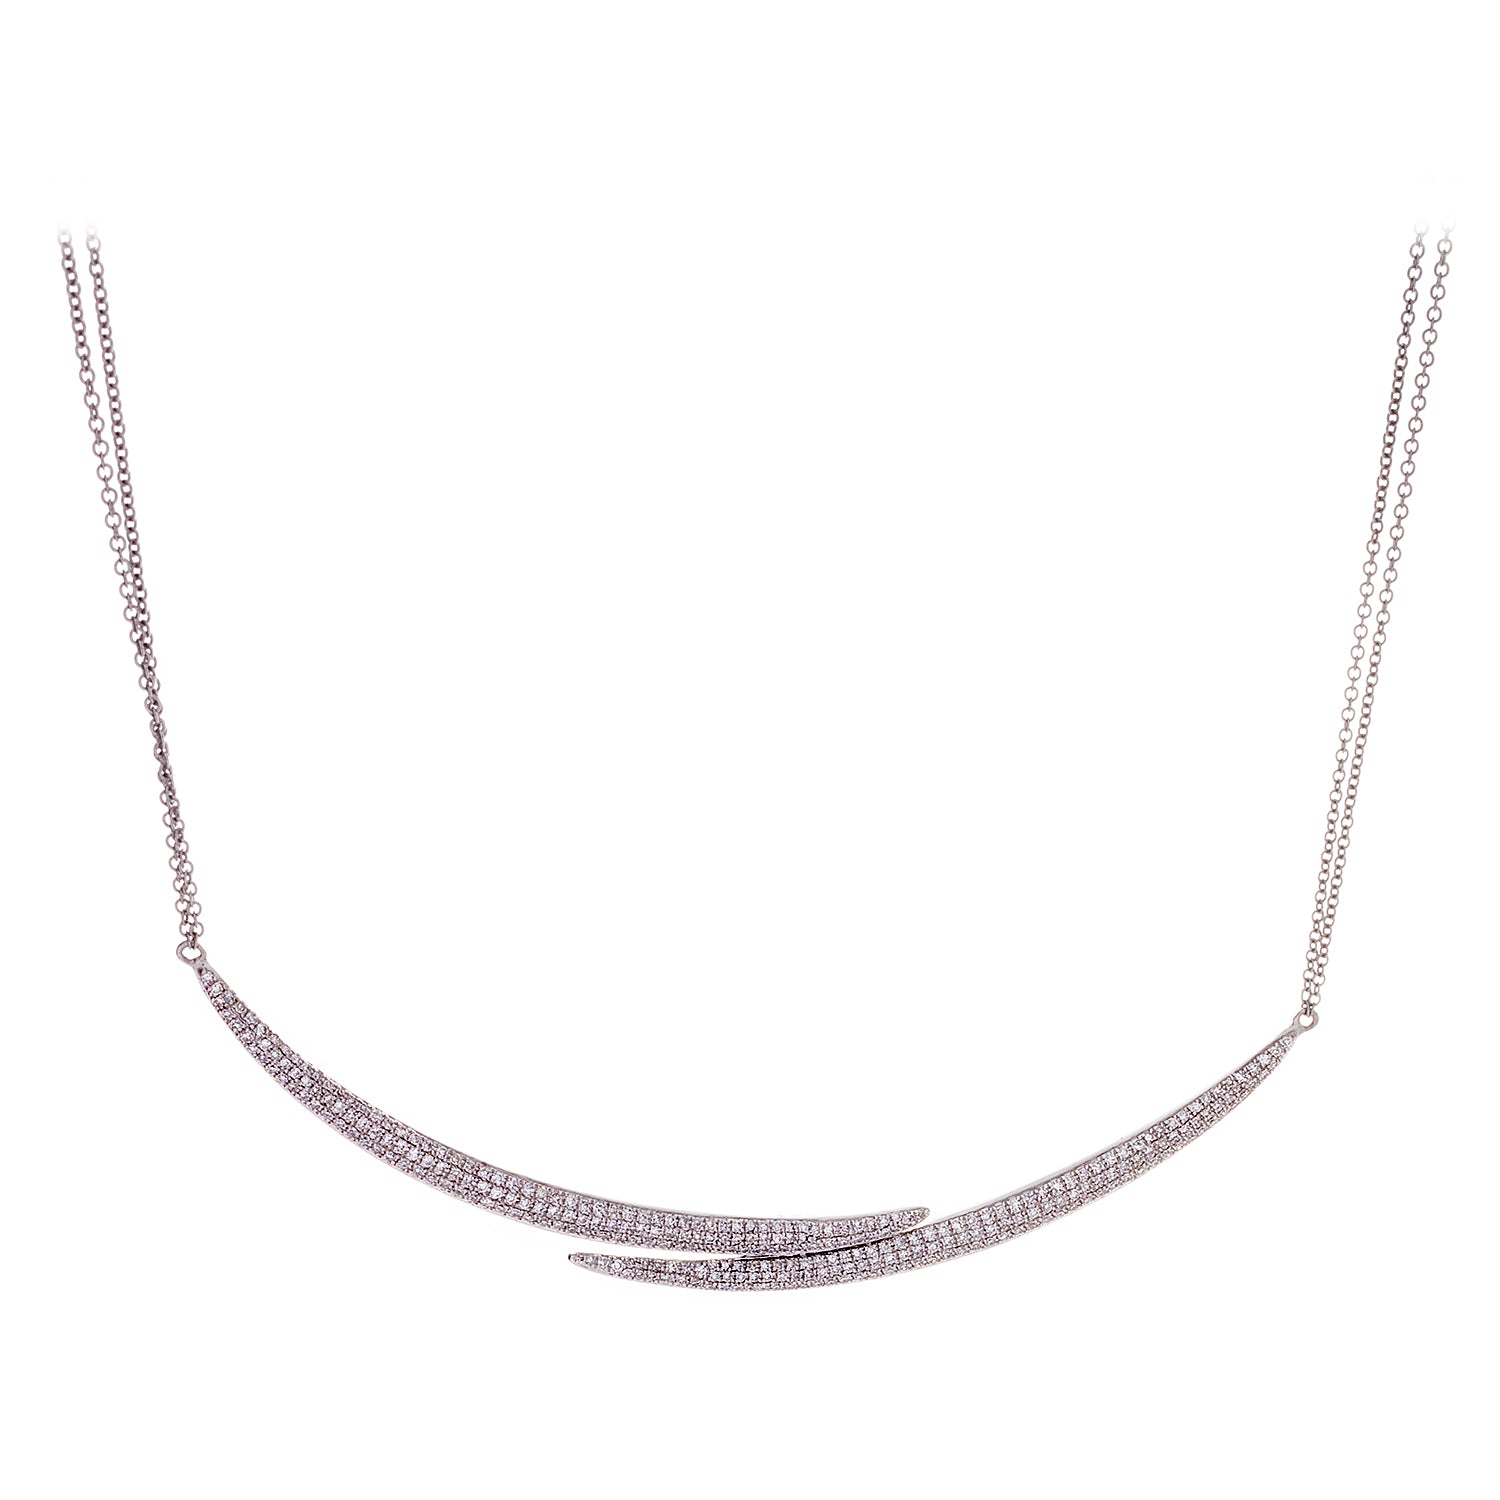 Double Half Moon Diamonds & 14K White Gold Necklace